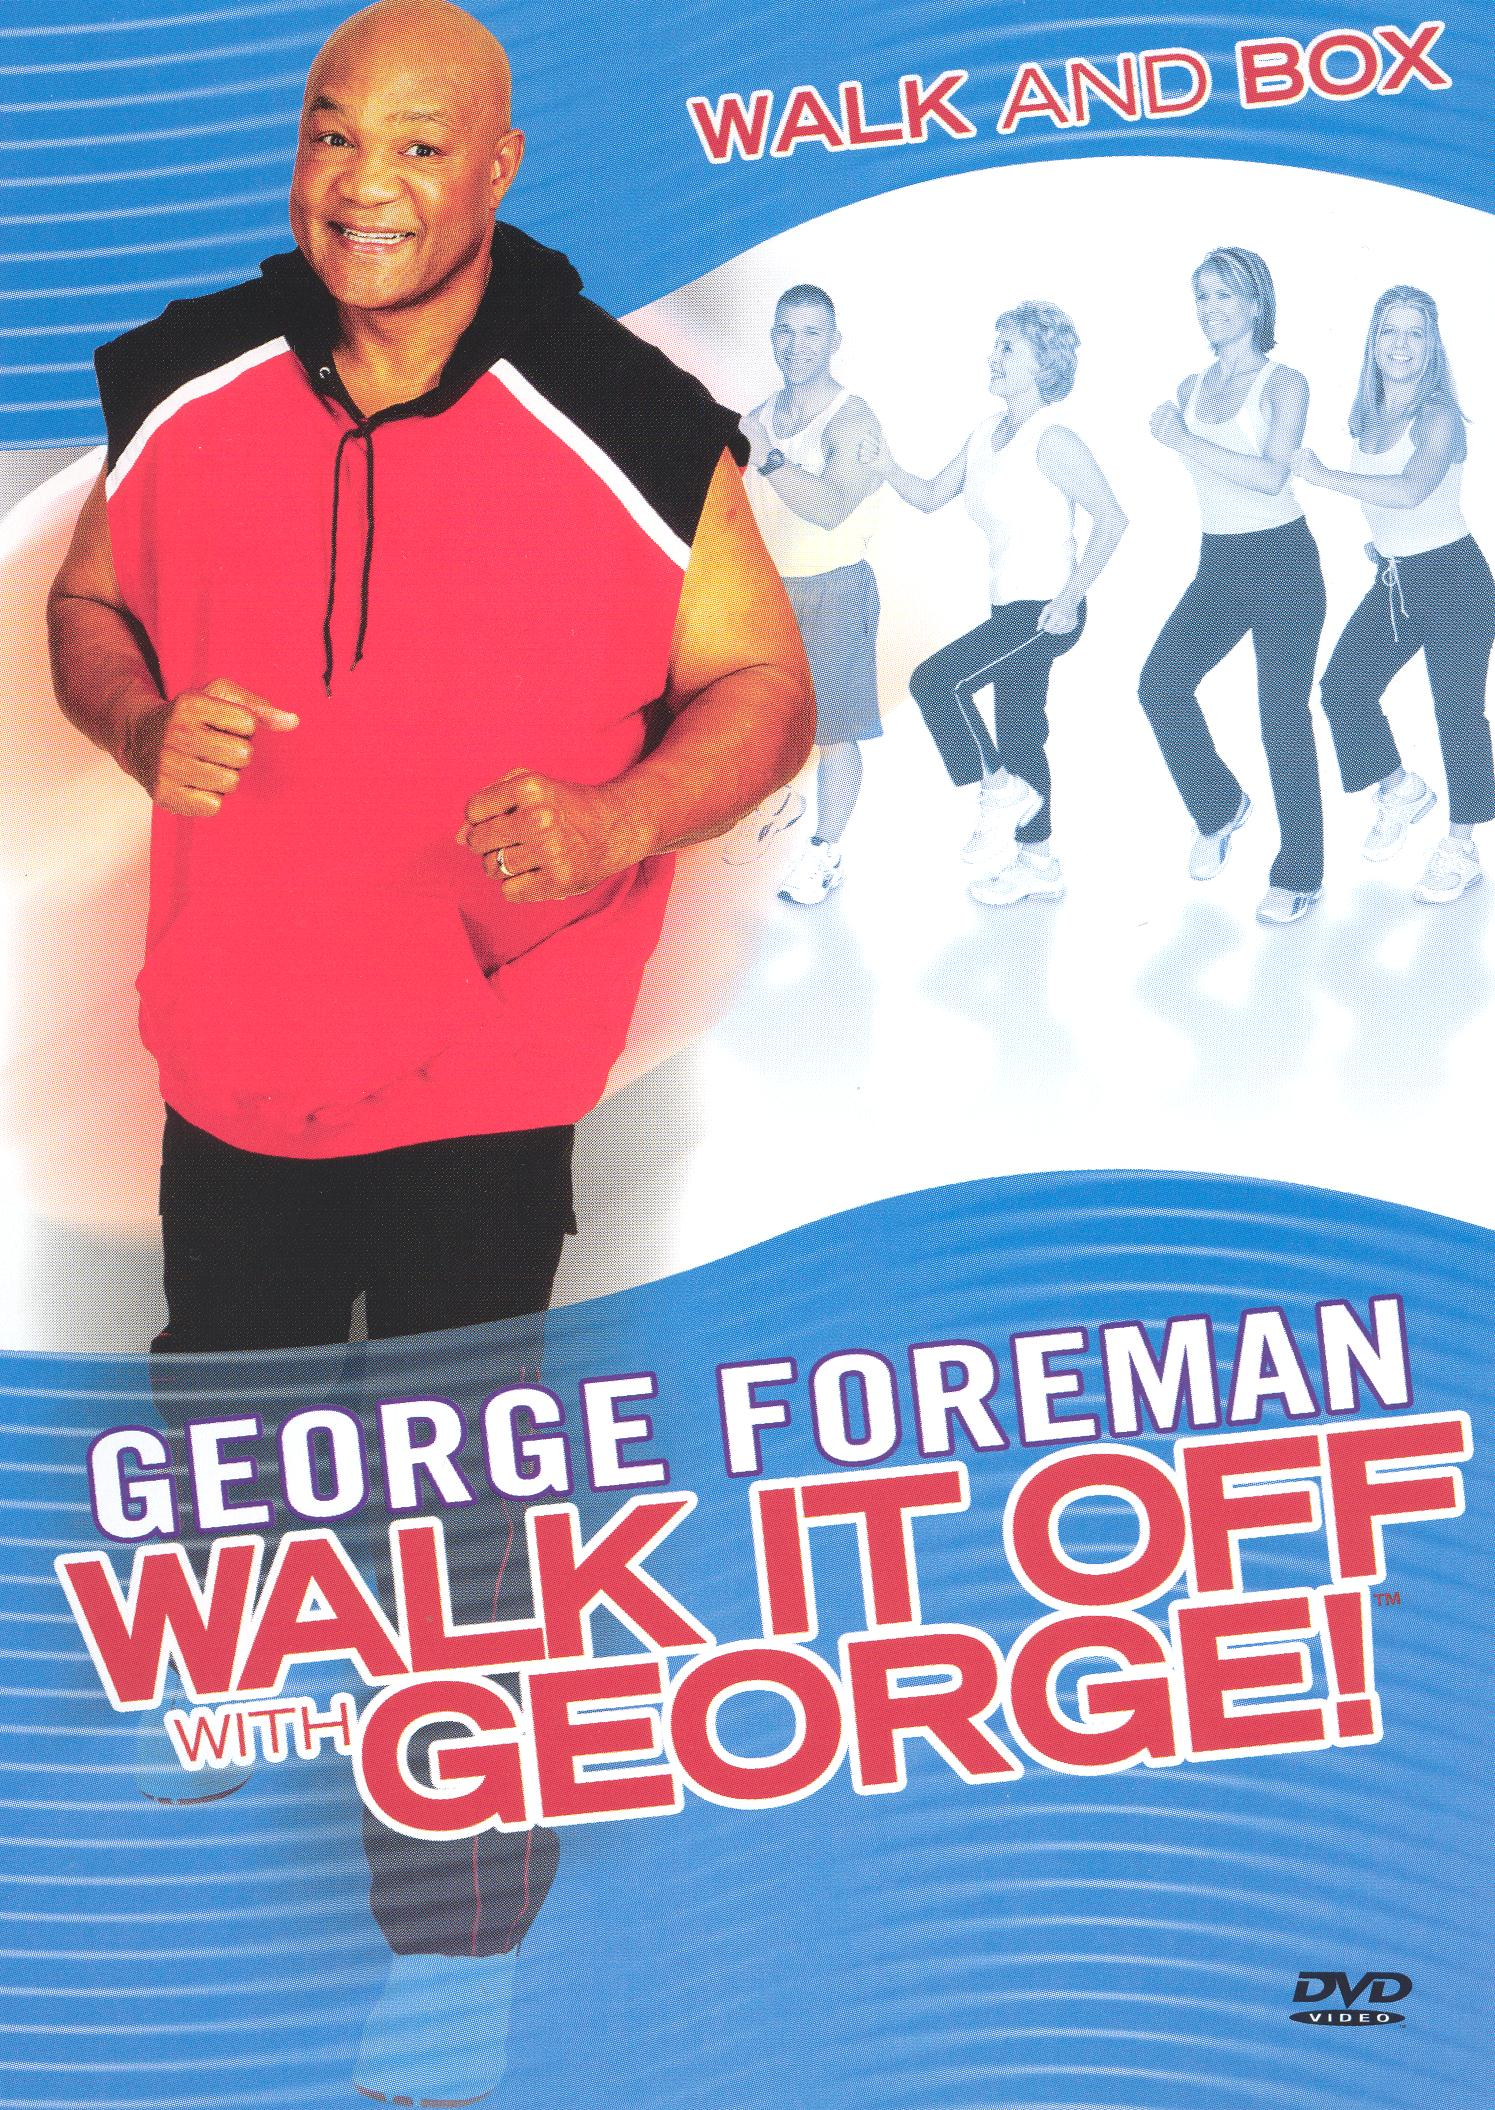 George Foreman: Walk it Off With George - Walk and Box